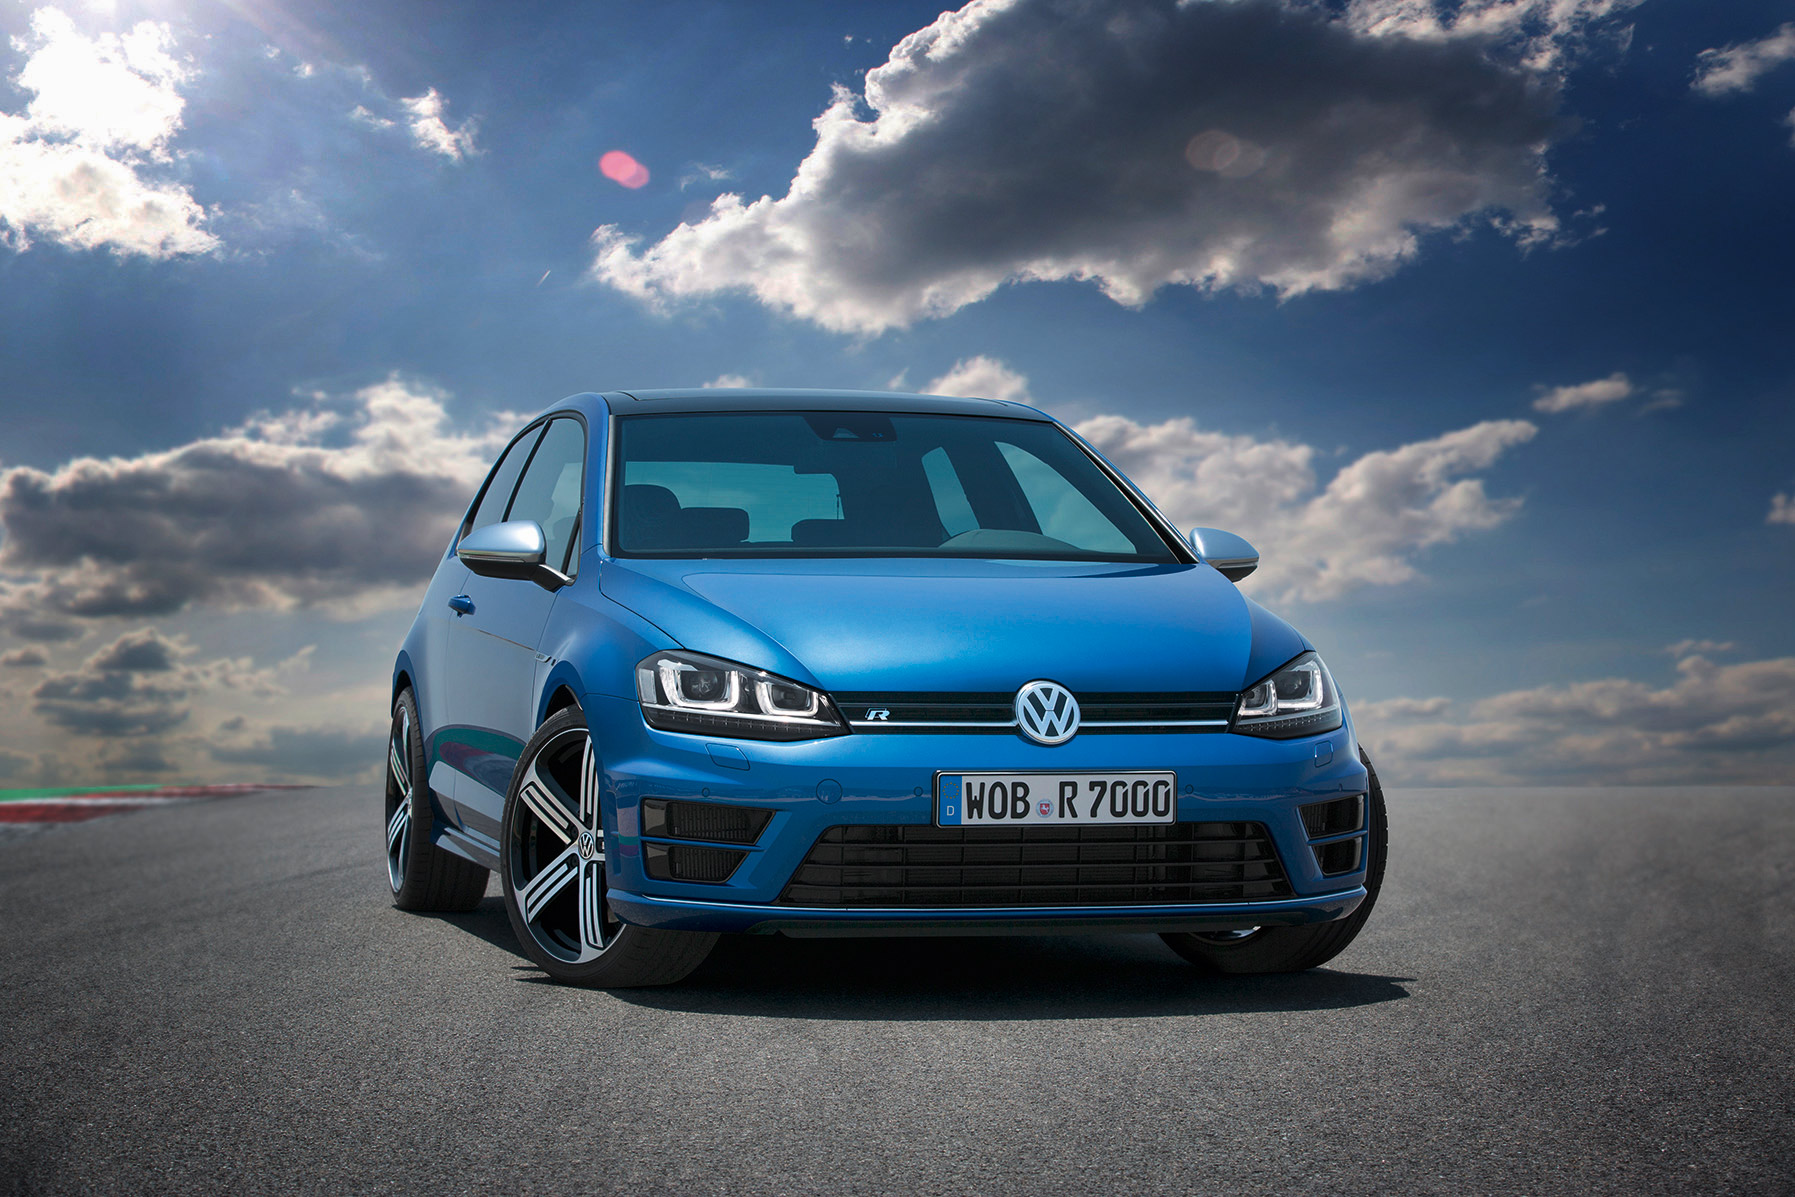 volkswagen-golf-7-r-010